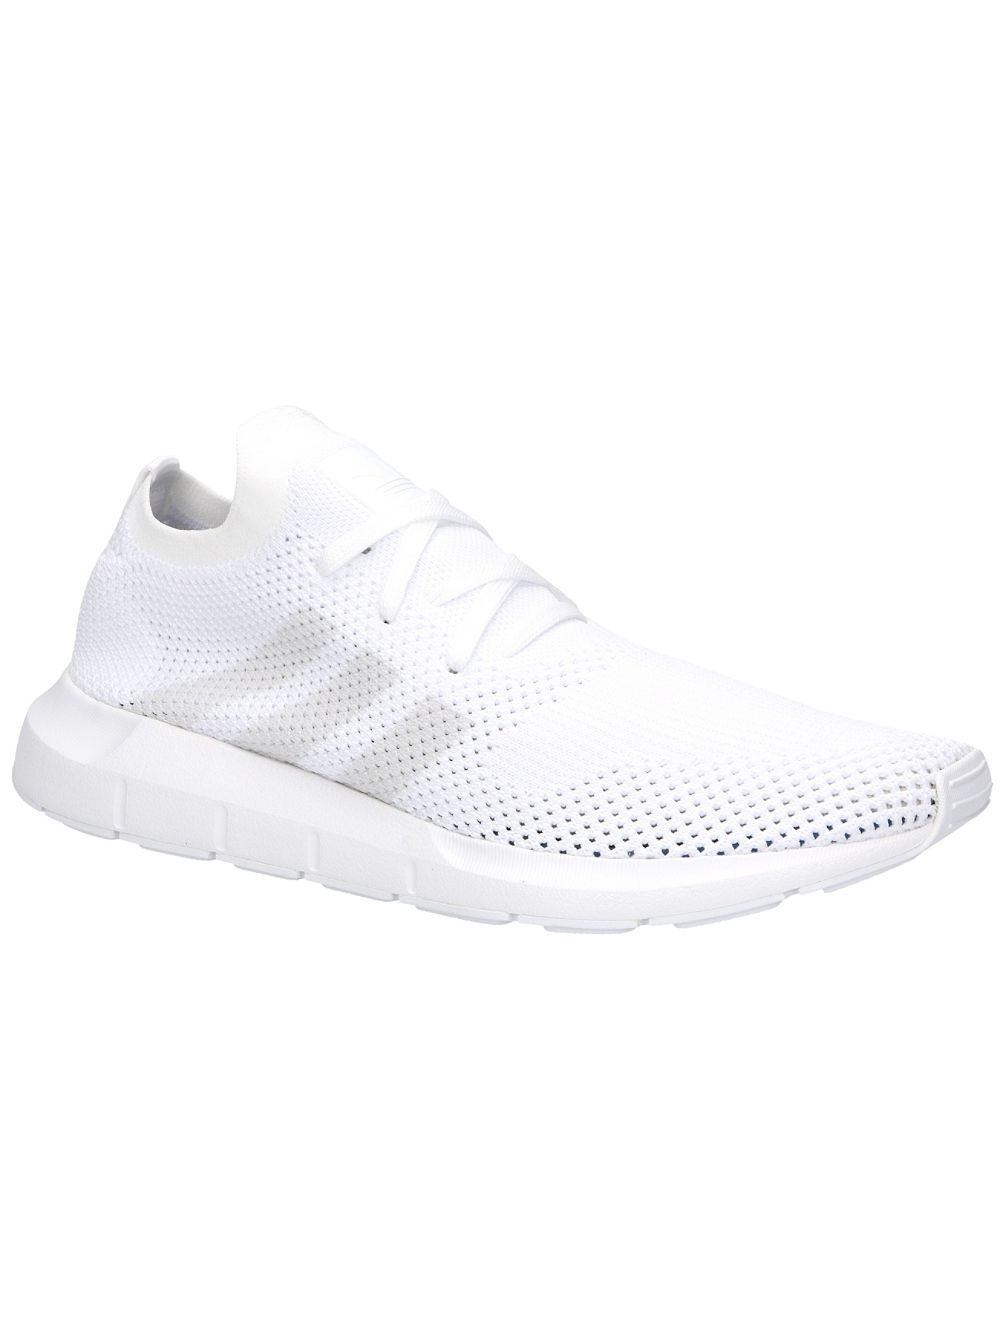 ae153c57457f Buy adidas Originals Swift Run Primeknit Sneakers online at Blue Tomato